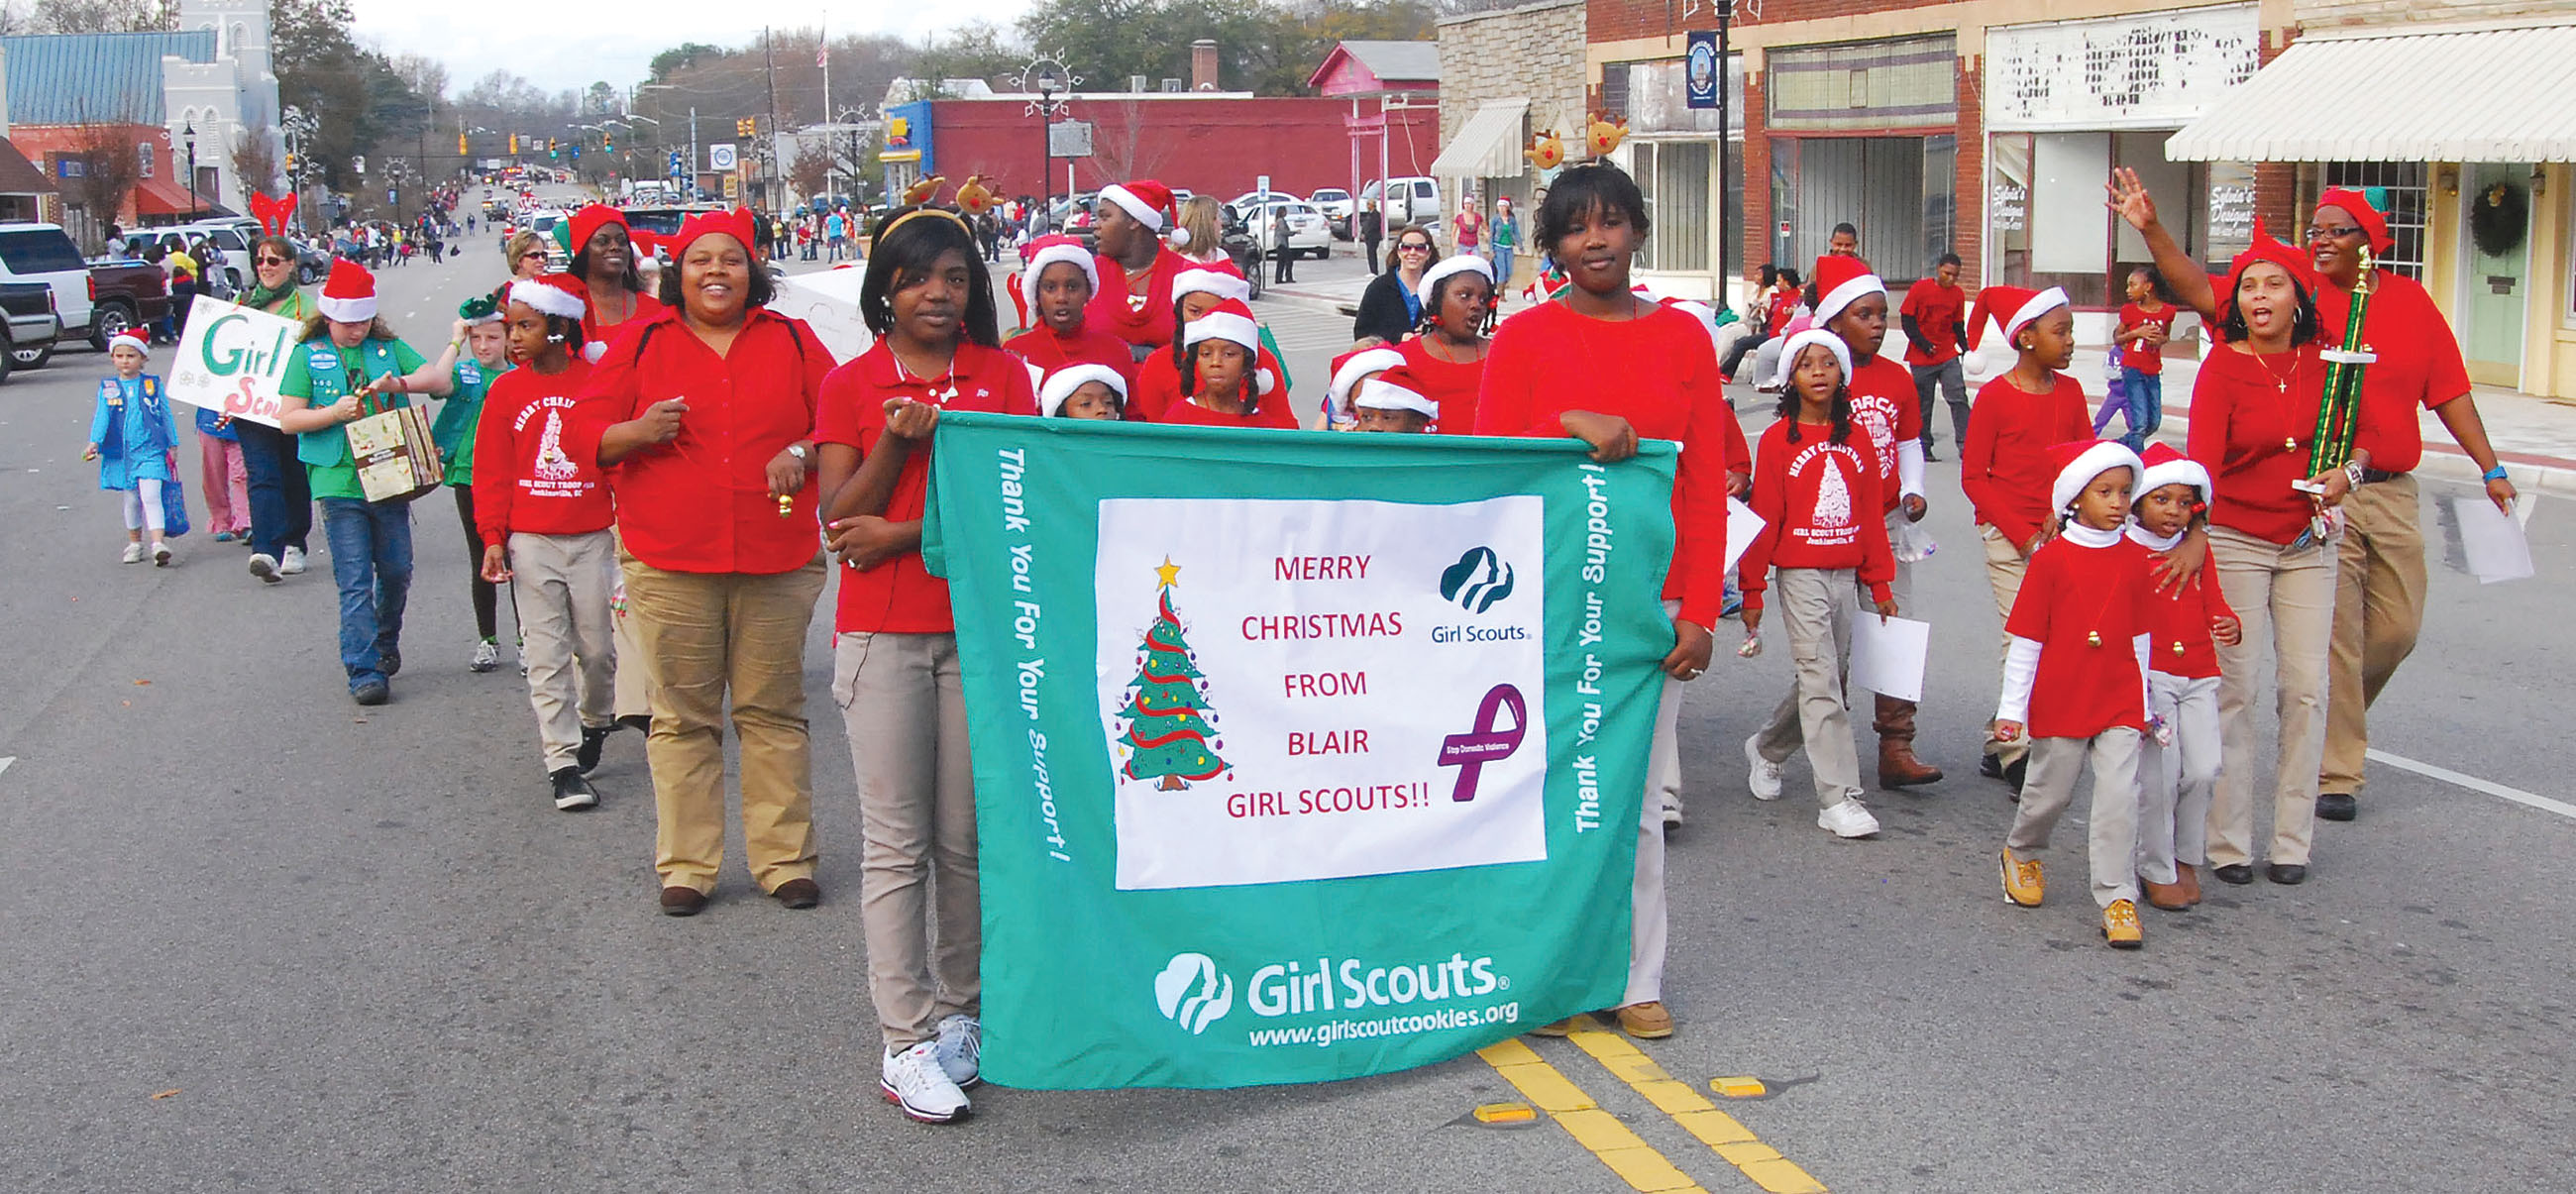 2012 Downtown Winnsboro Christmas Parade | The Independent